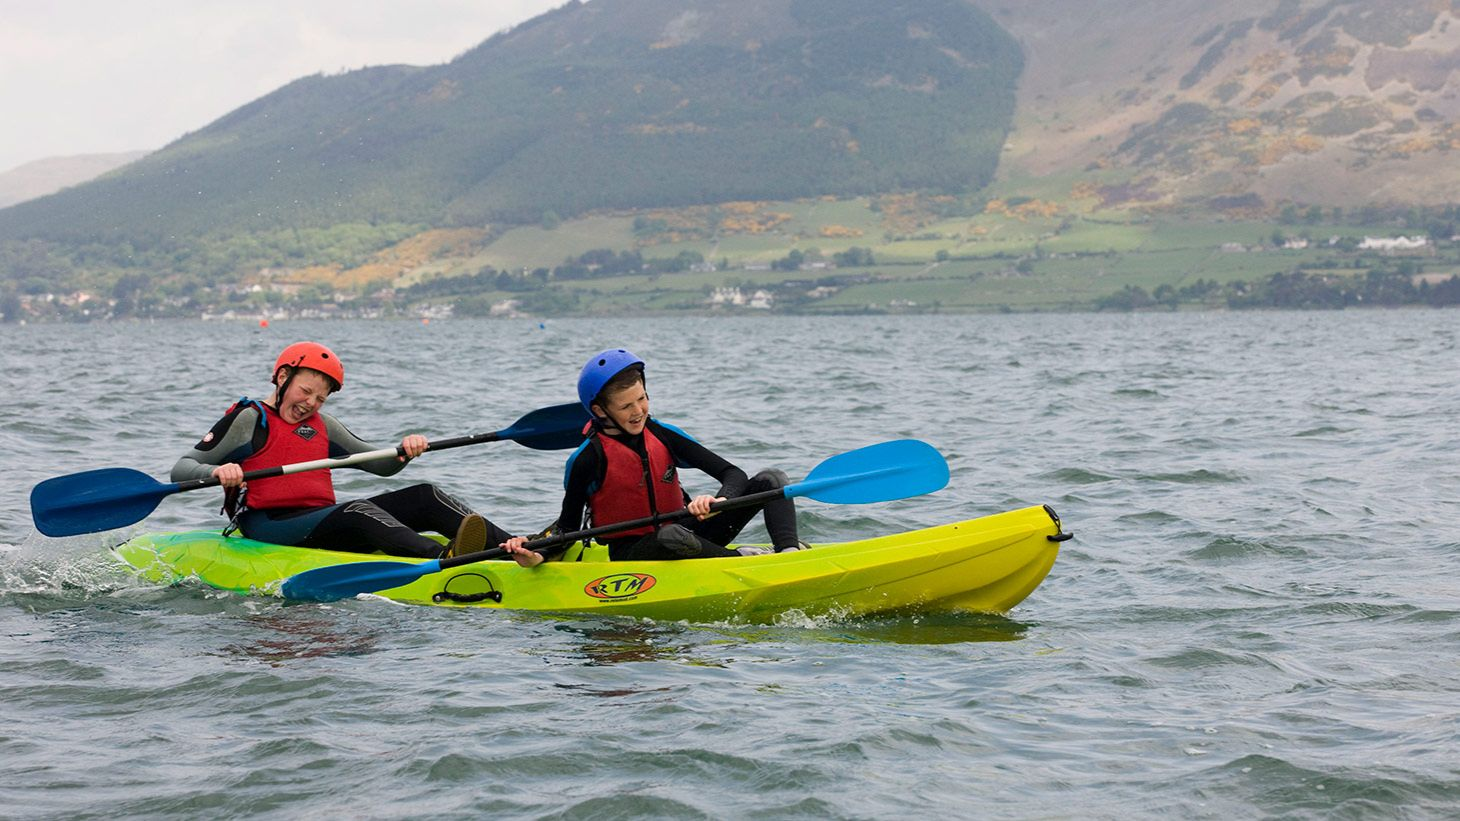 Have fun kayaking at Carlingford Adventure Centre and Skypark.